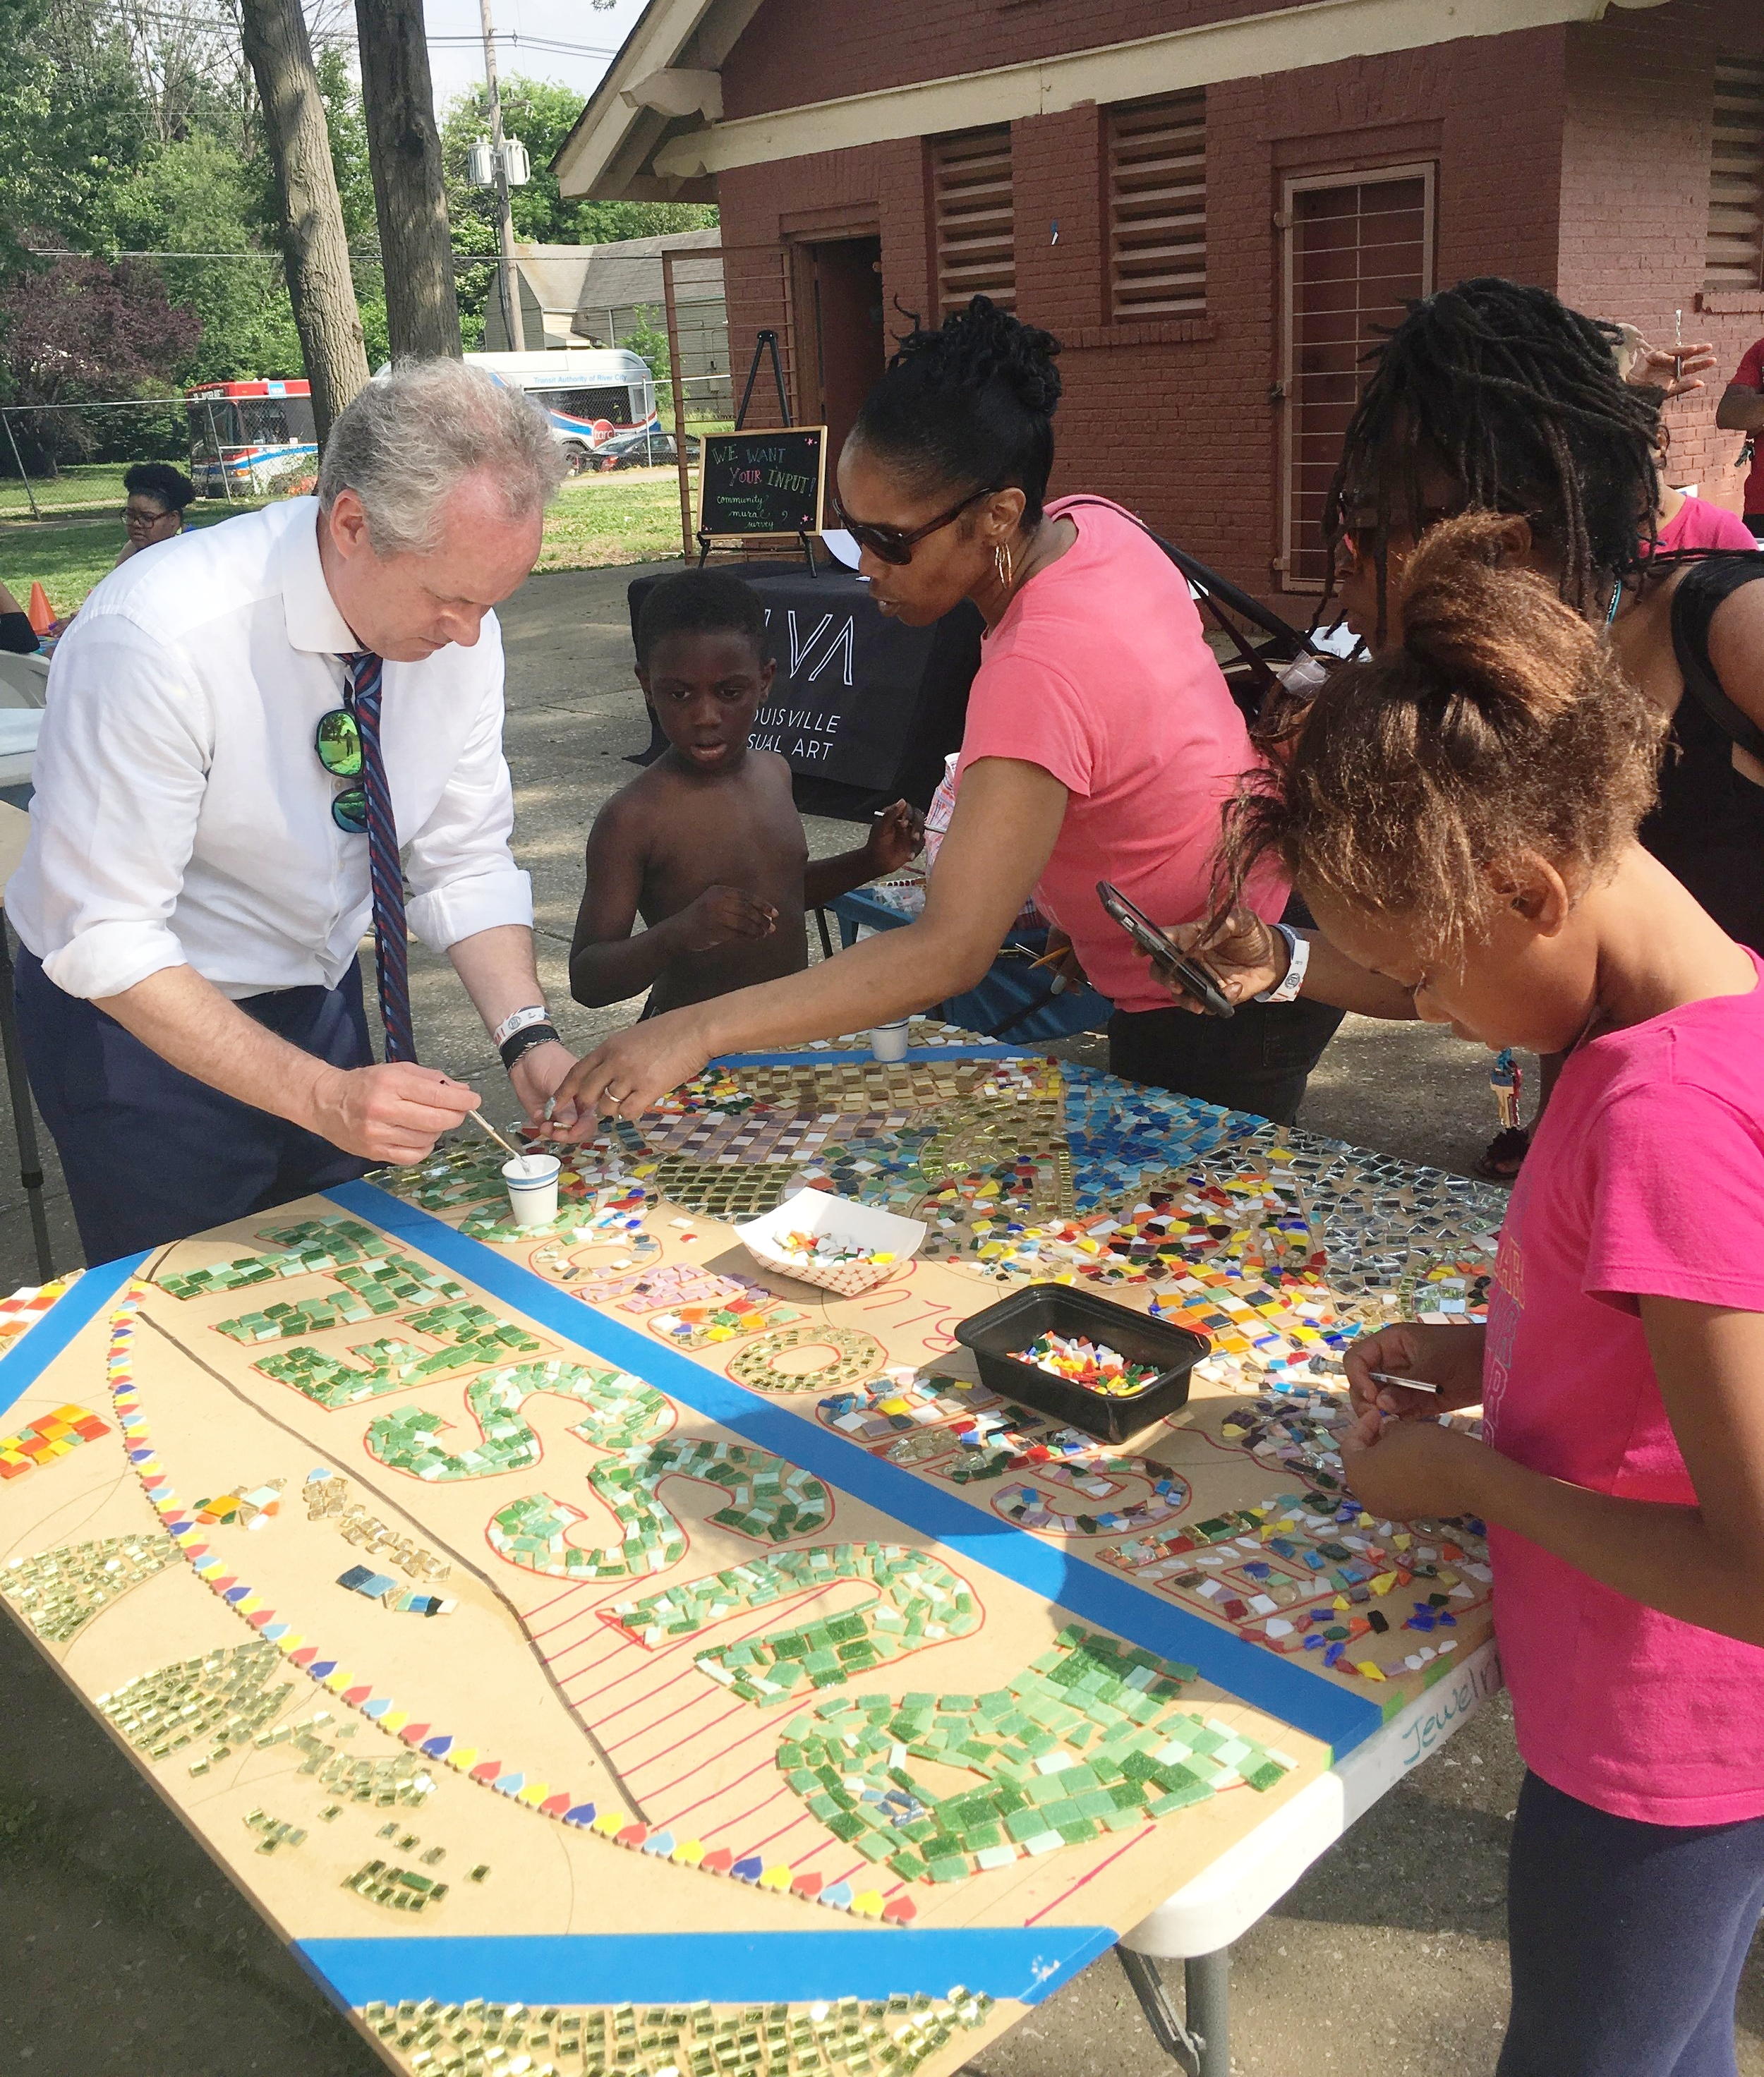 Thanks to  New Directions Housing Corporation  and the Russell Neighborhood Association for hosting such a great family event, and to  Imagine Greater Louisville 2020  for their support!